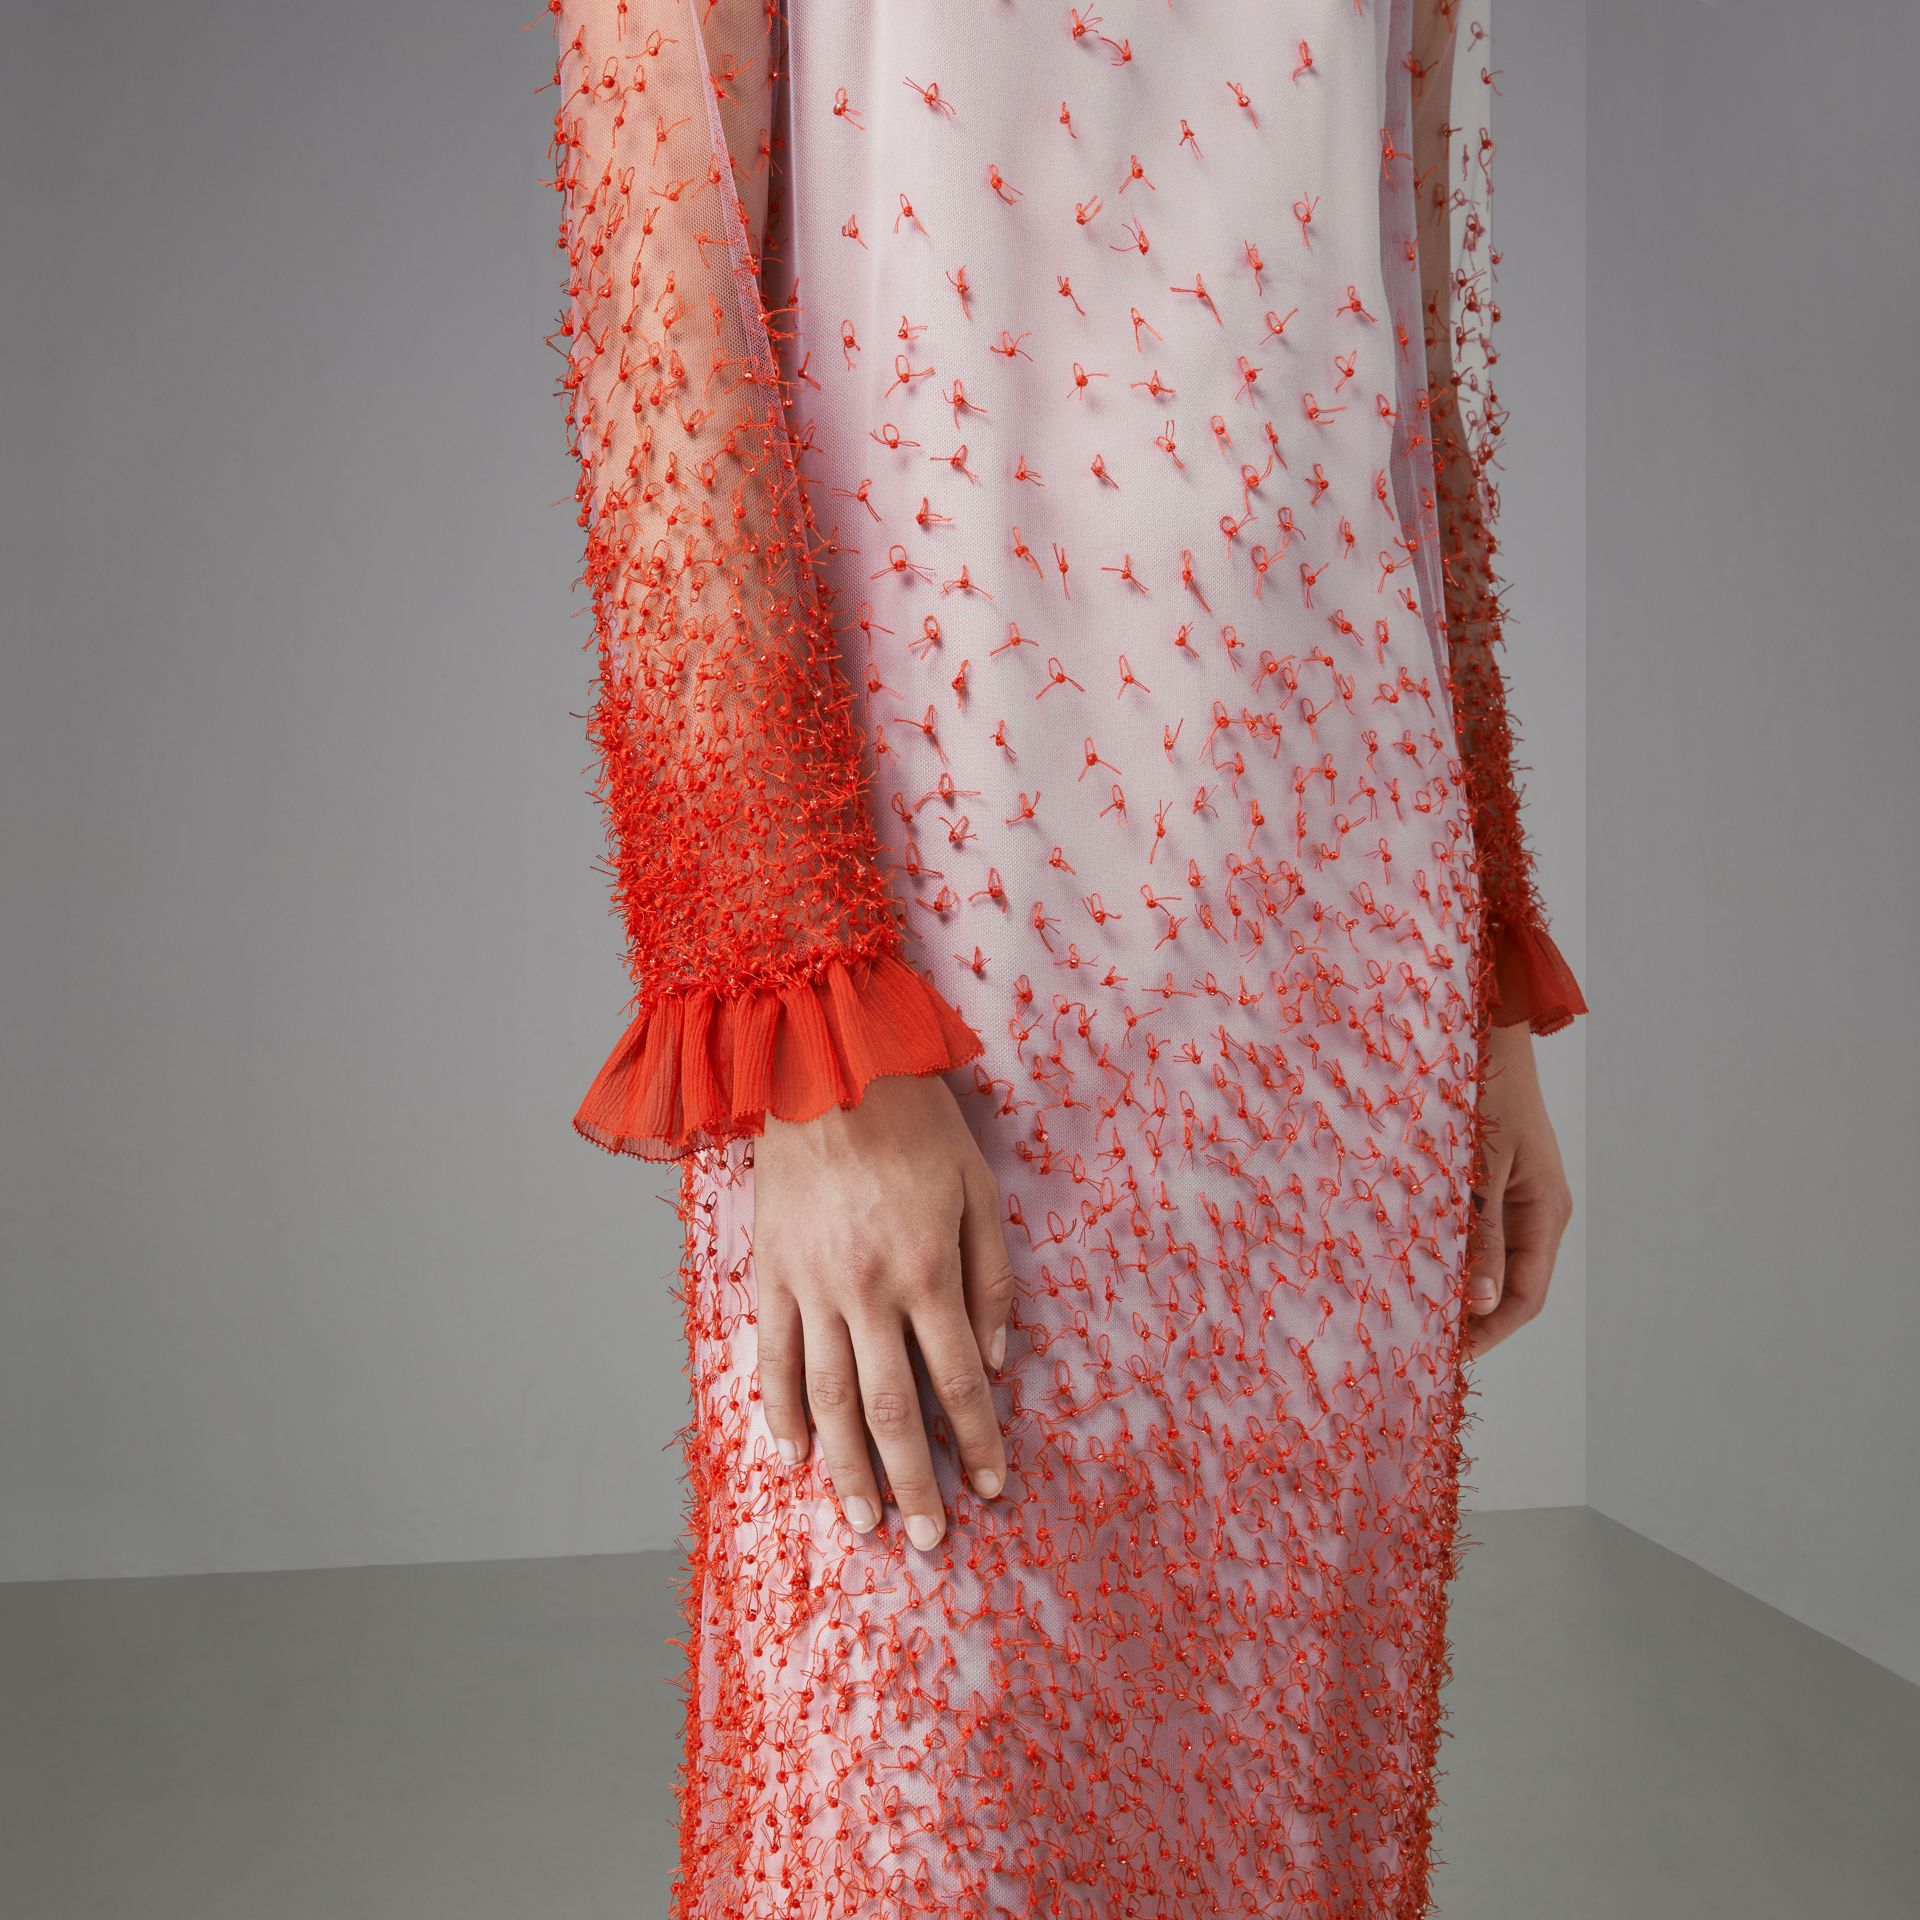 Dégradé Hand-beaded Crepon Dress in Coral - Women | Burberry Singapore - gallery image 4